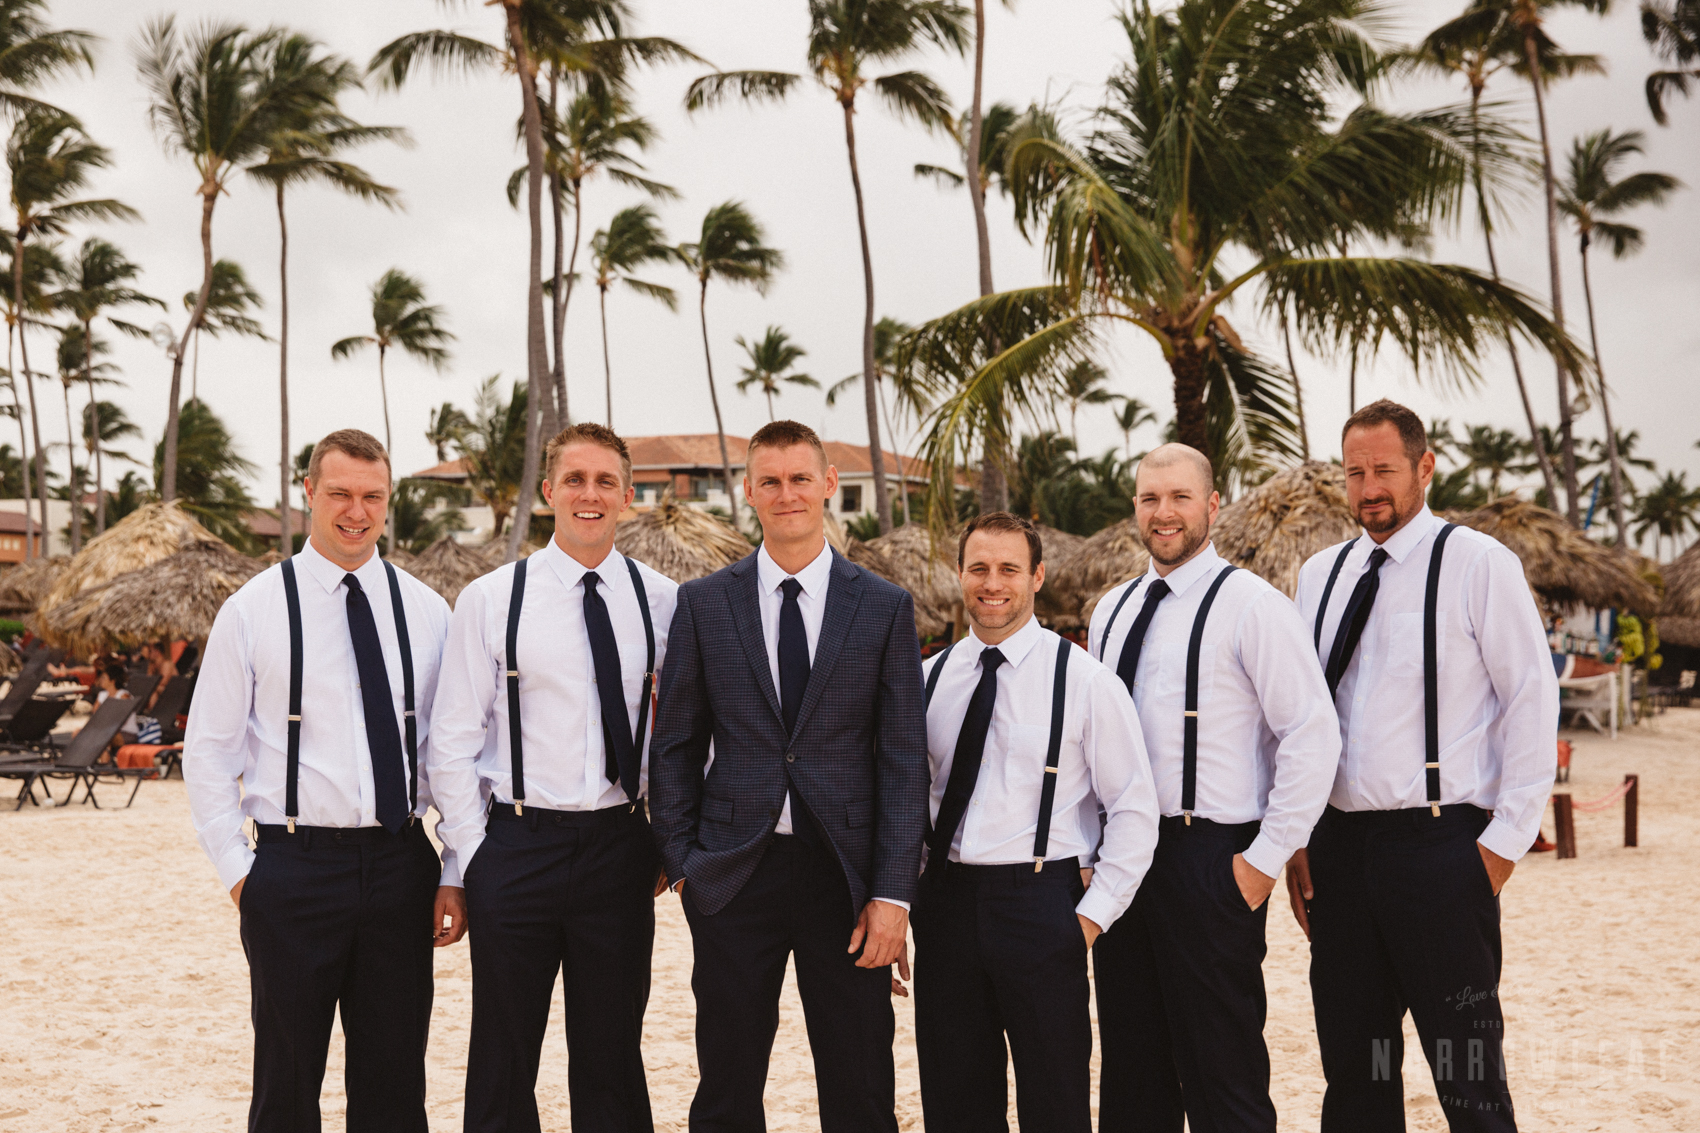 punta-cana-dominican-republic-destination-wedding-beach-groomsmen-6243.jpg